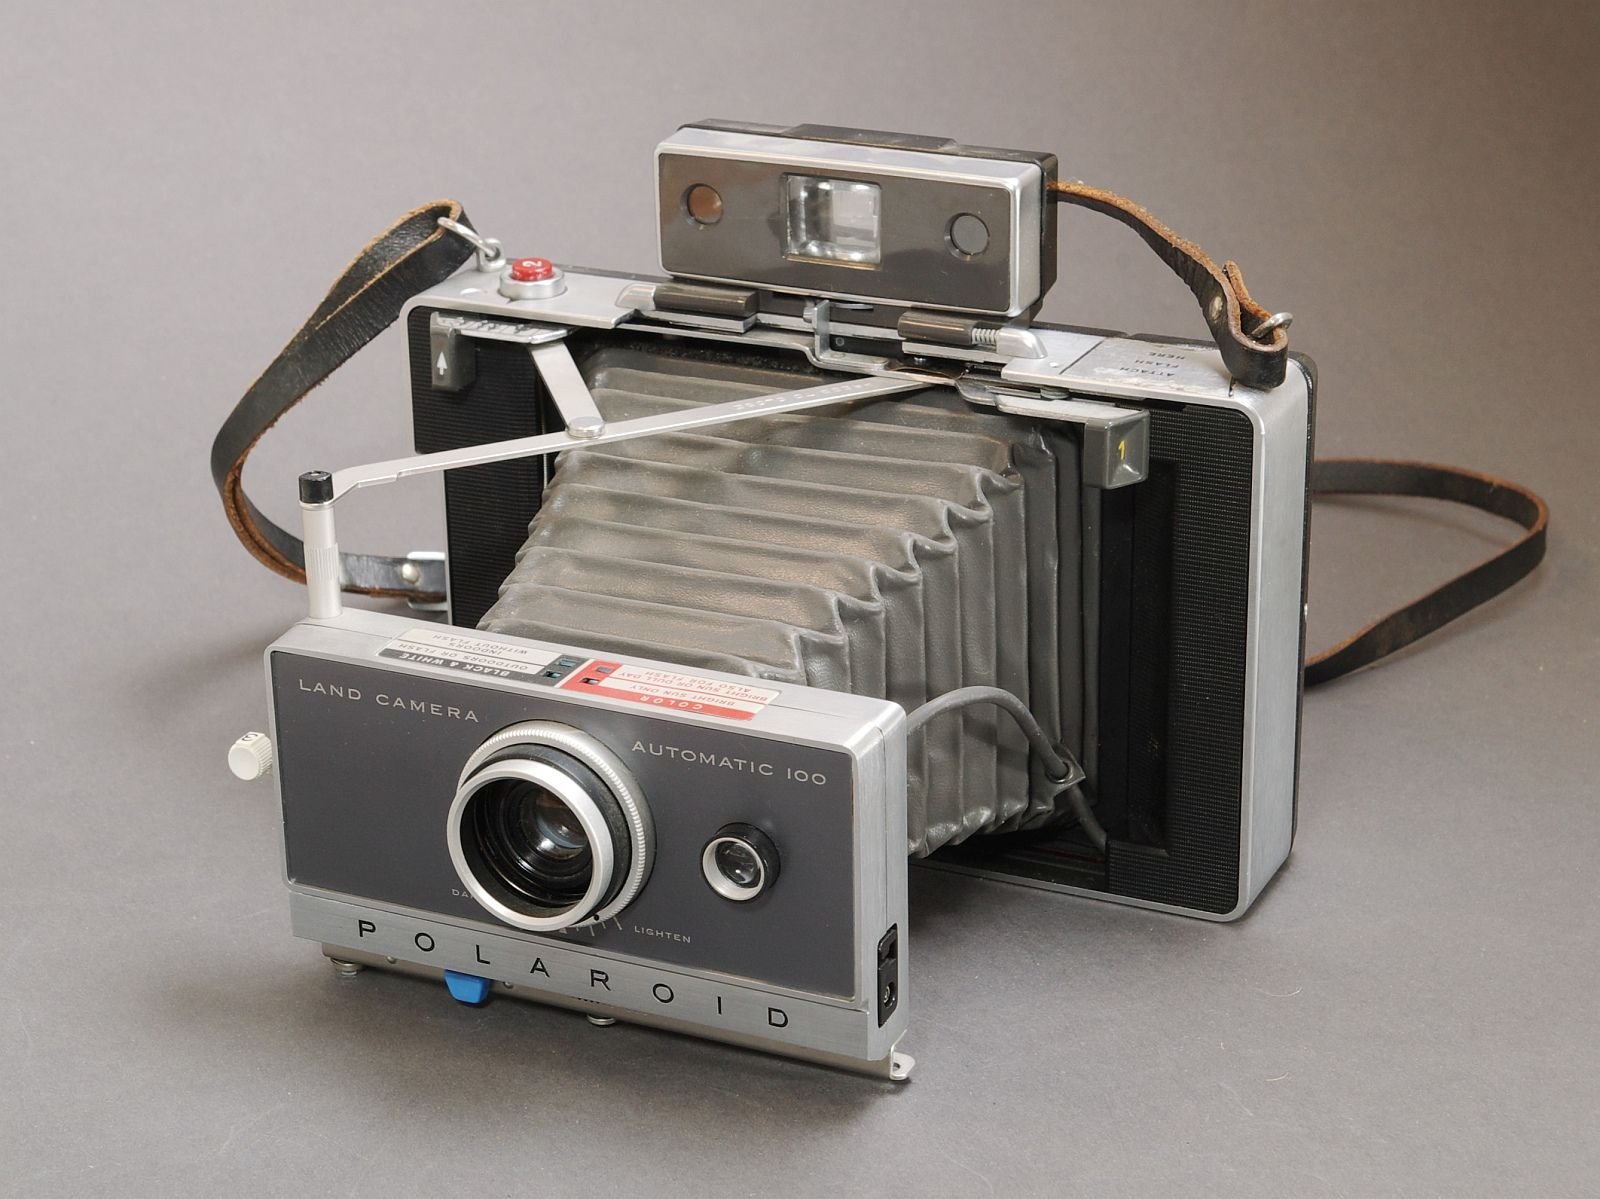 Polaroid Land Camera Automatic 100. 1963 | antique and classic ...